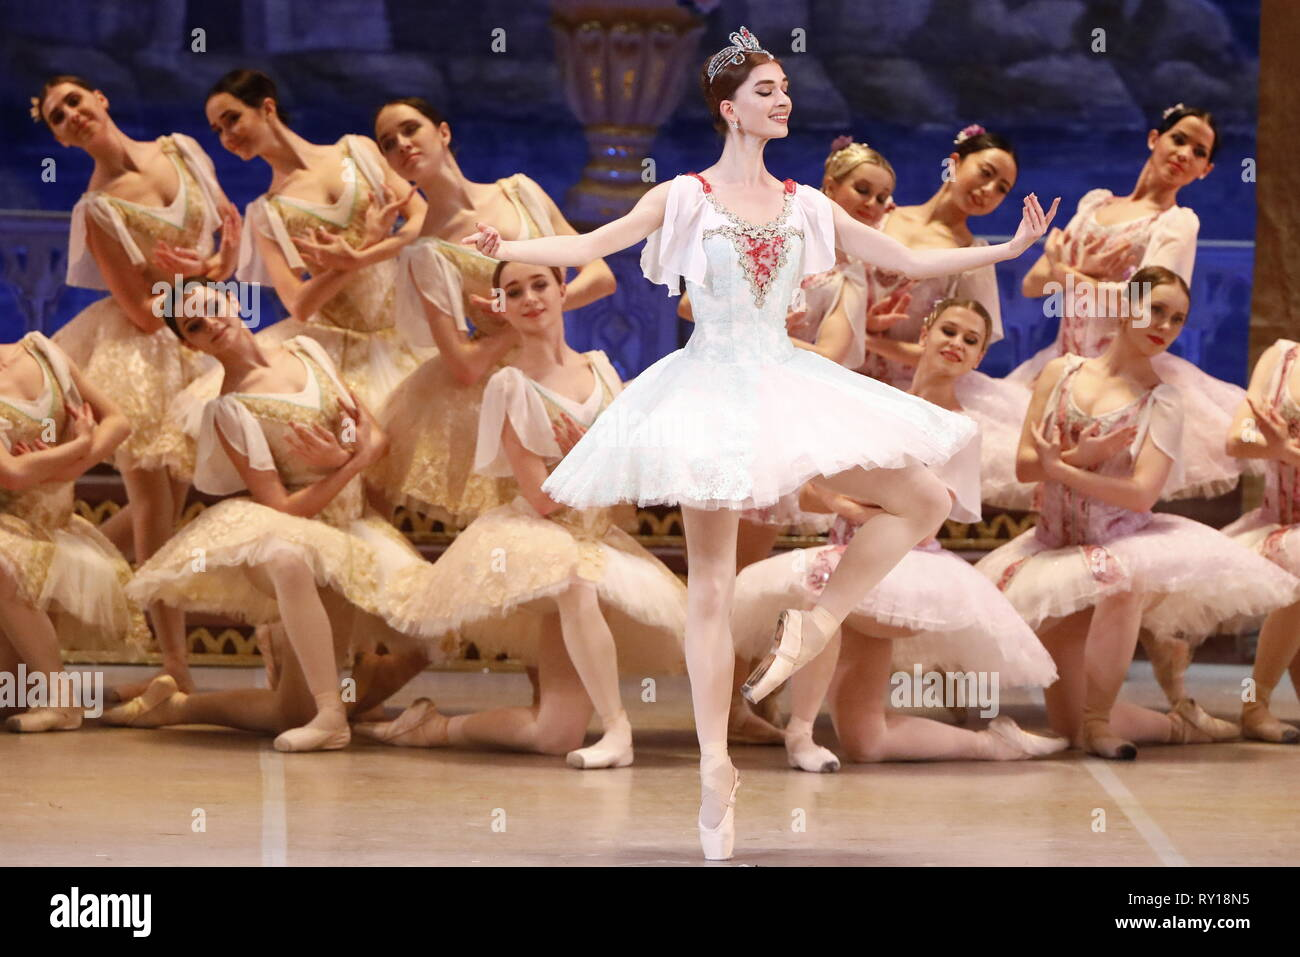 Moscow, Russia. 11th Mar, 2019. MOSCOW, RUSSIA - MARCH 11, 2019: Ballet dancer Yelizaveta Korneyeva (C) as Gulnare performs in a scene from the Le Corsaire production of the Voronezh Opera and Ballet Theatre, staged by Yuri Burlaka at Stanislavski and Nemirovich-Danchenko Moscow Music Theatre as part of the 2019 Golden Mask Russian Performing Arts Festival. Alexander Shcherbak/TASS Credit: ITAR-TASS News Agency/Alamy Live News - Stock Image